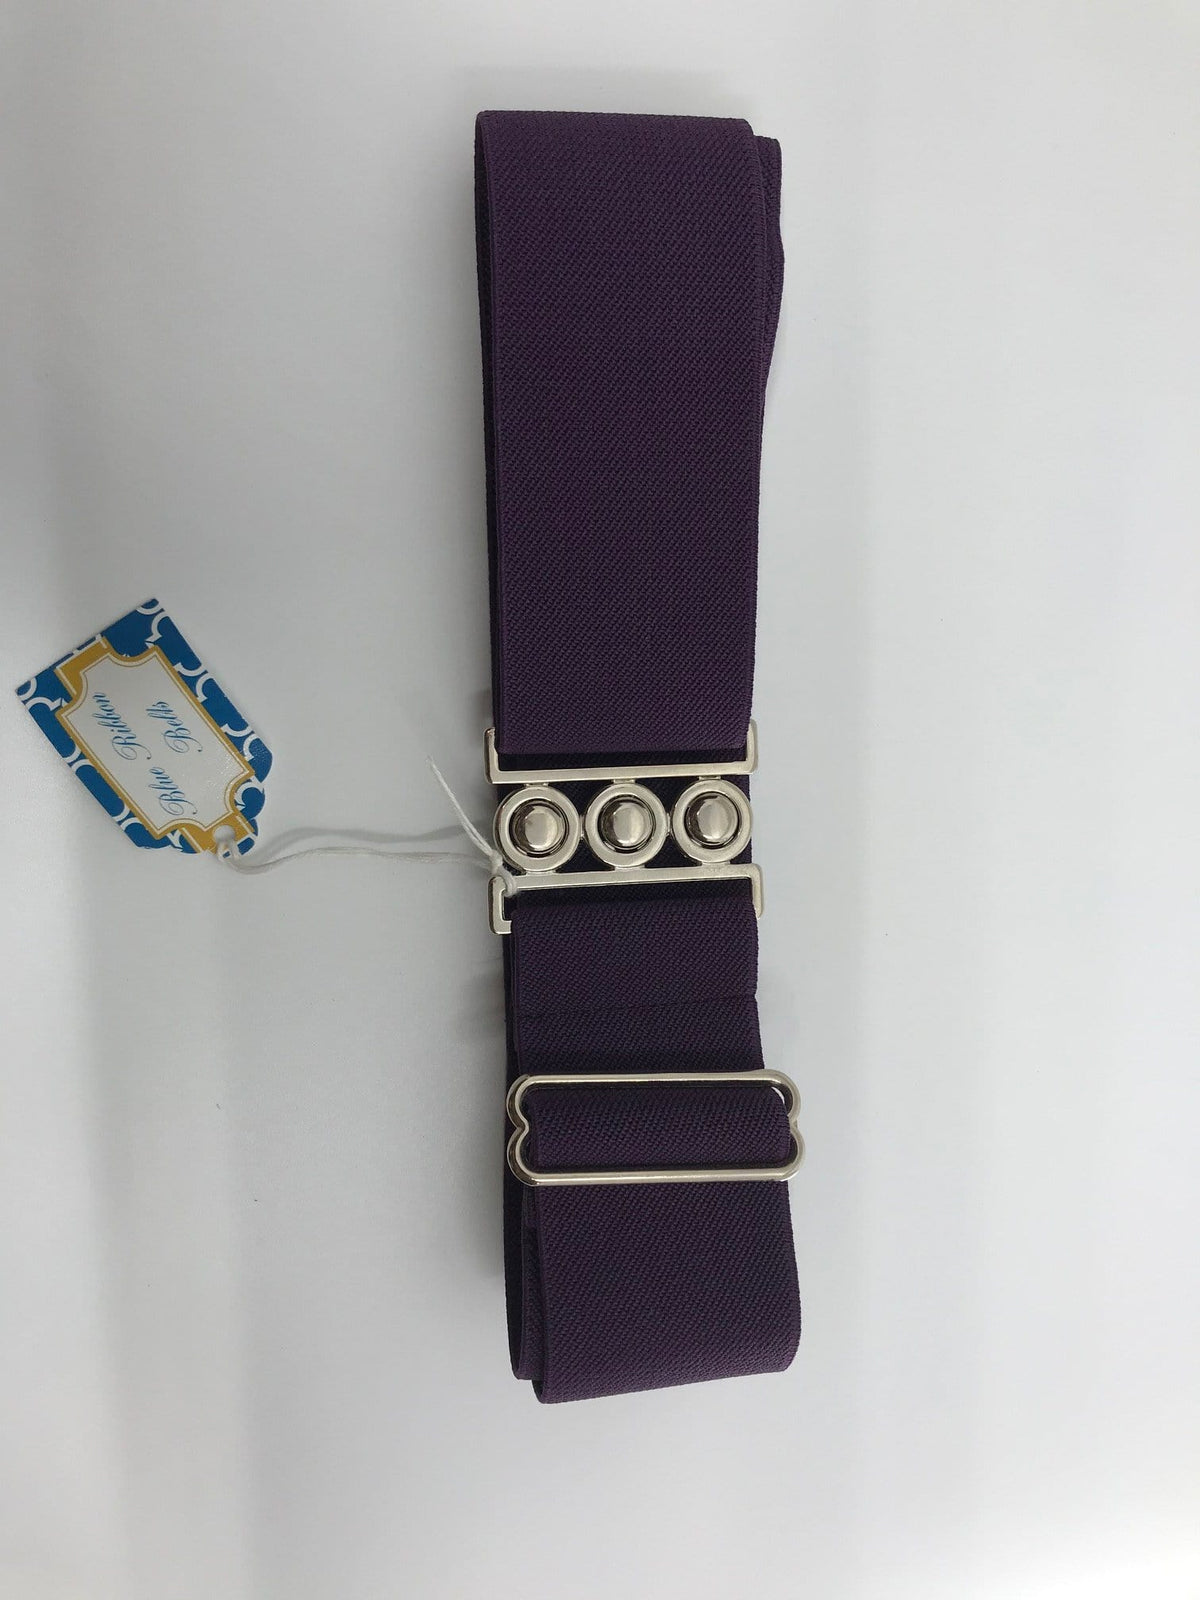 Blue Ribbon Belts Belt Dark Purple Blue Ribbon Belts - 2 Inch equestrian team apparel online tack store mobile tack store custom farm apparel custom show stable clothing equestrian lifestyle horse show clothing riding clothes horses equestrian tack store